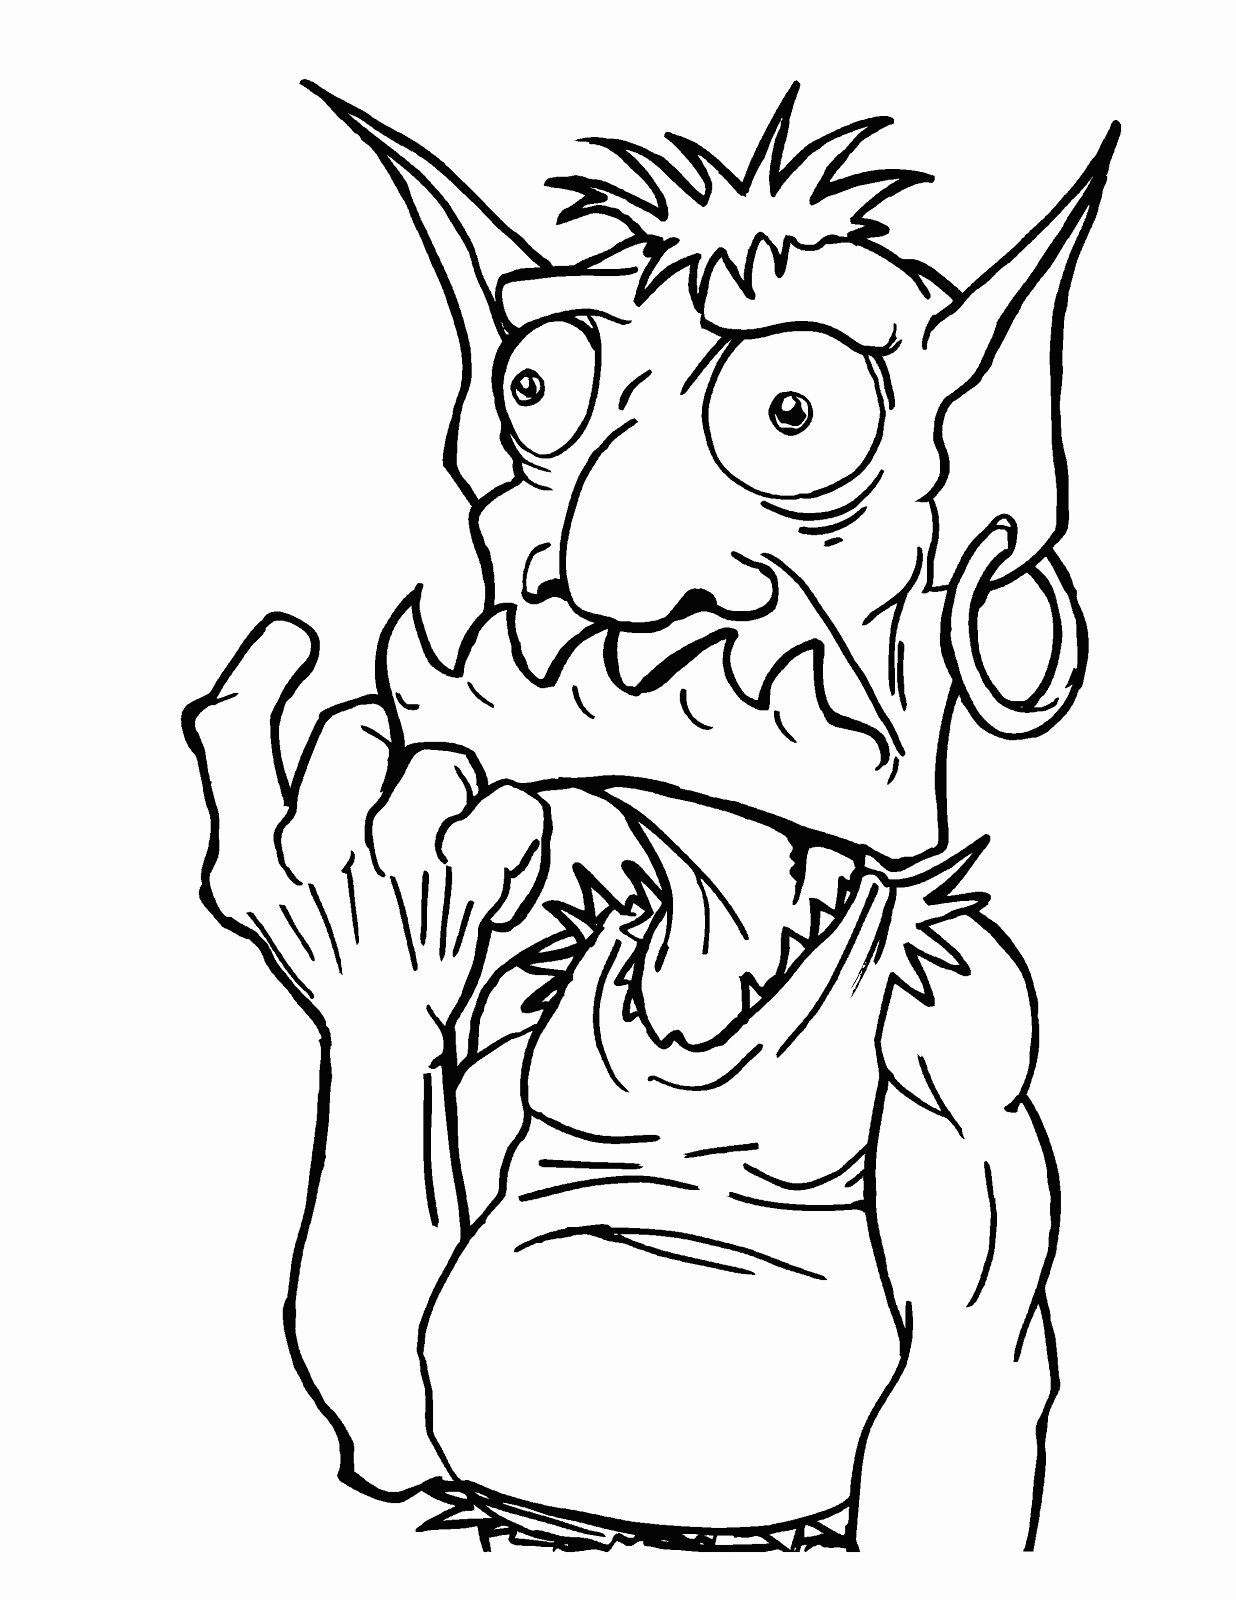 Scared Goblin Coloring Page